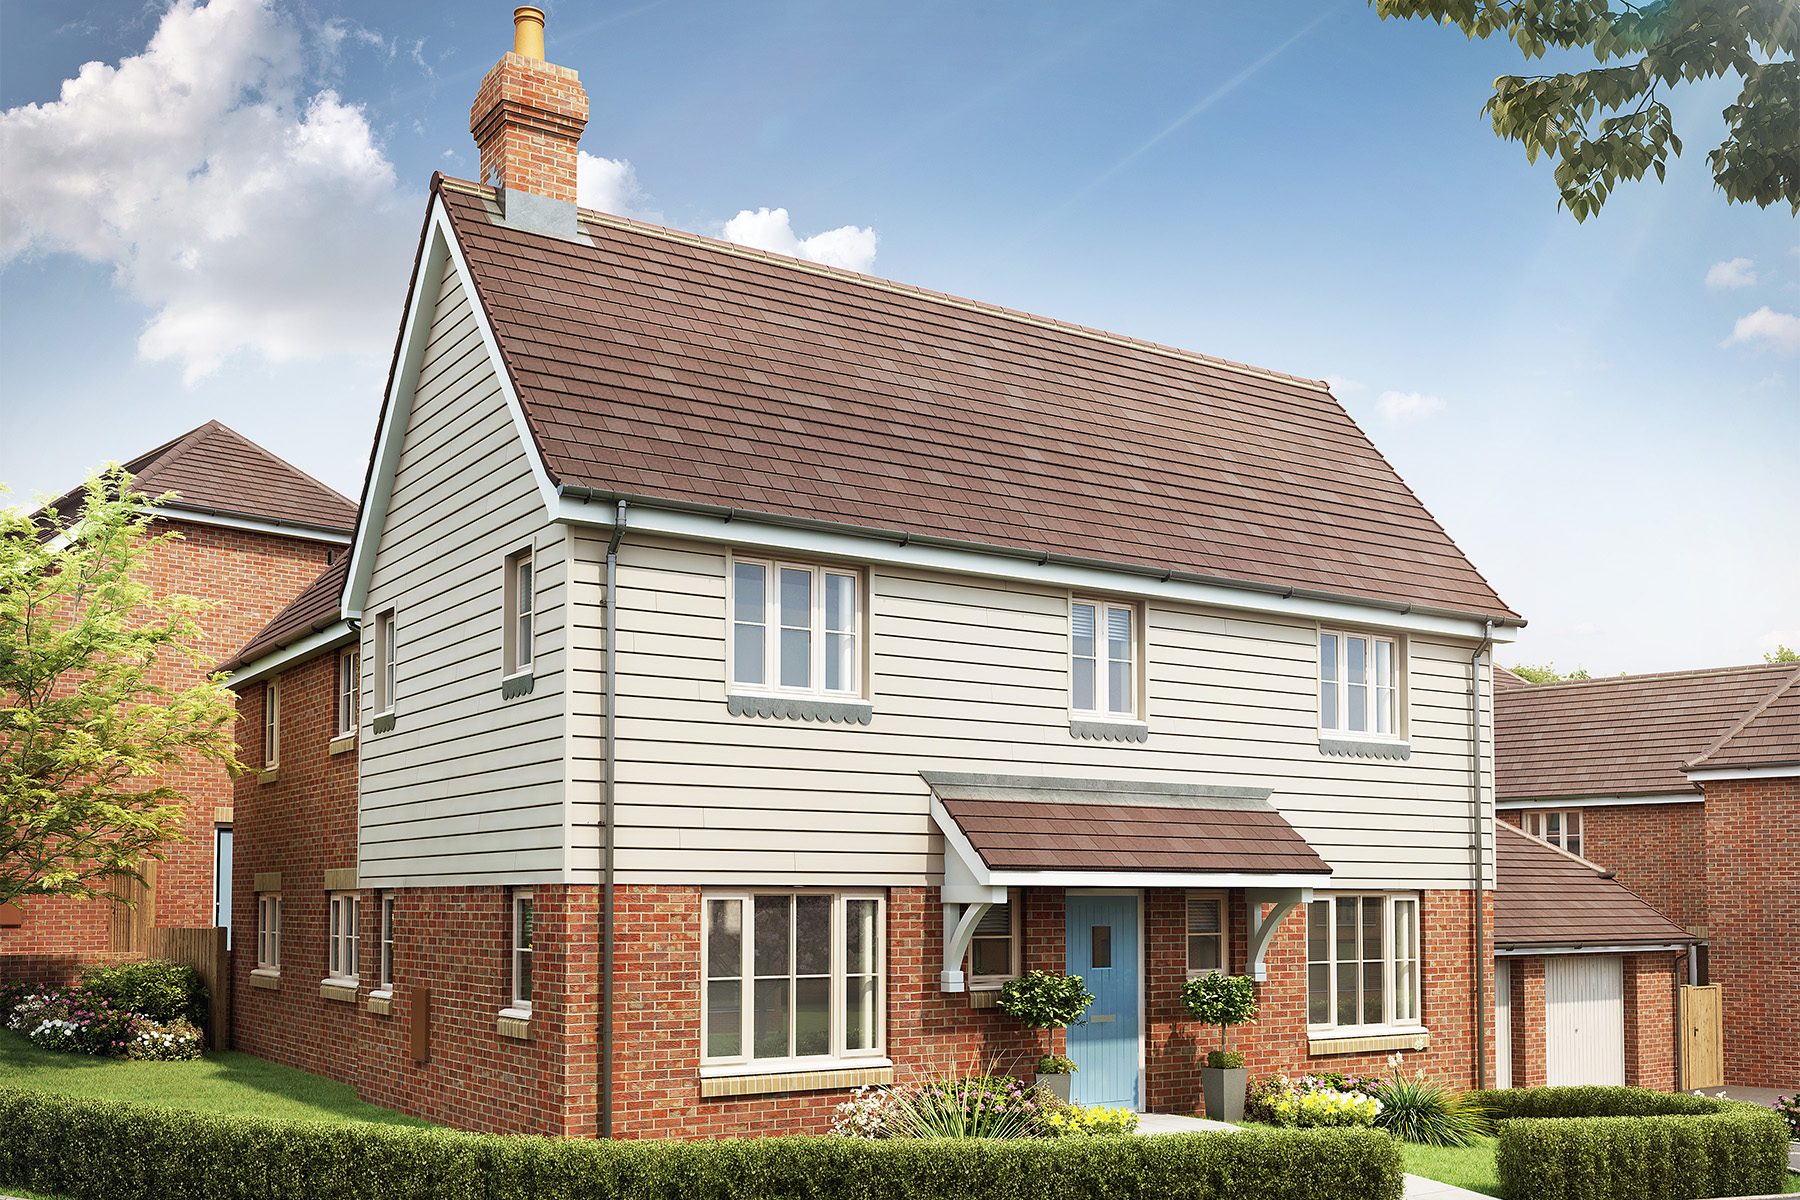 Aldington D - Plot 32